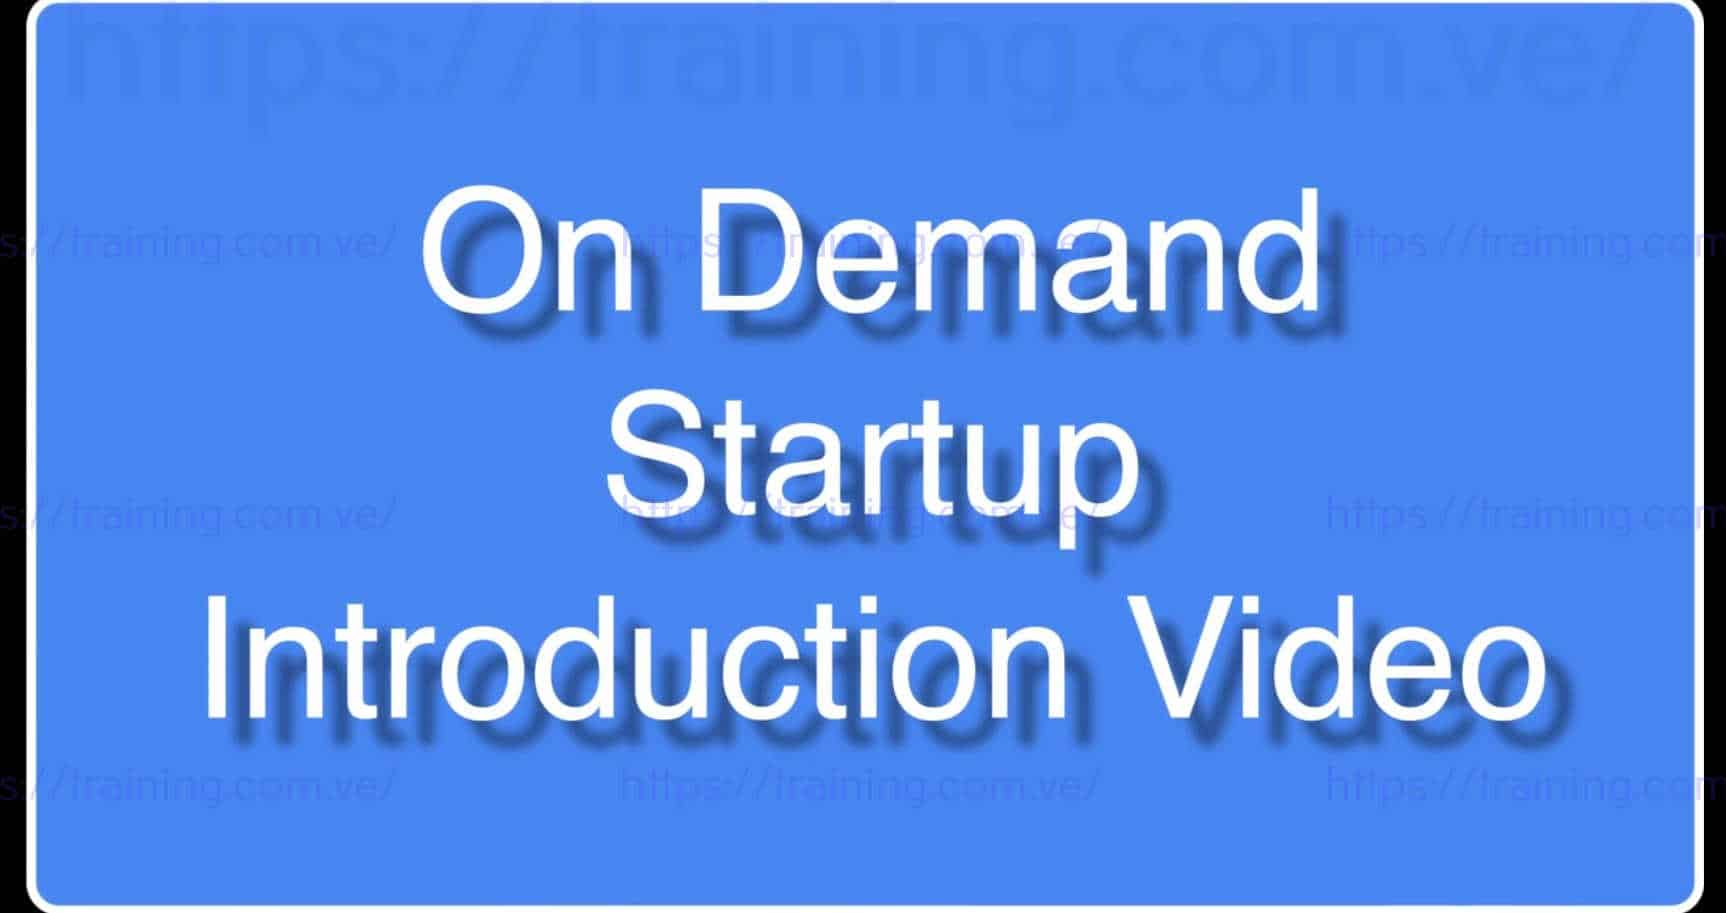 On Demand Startup by Anik Singal 2